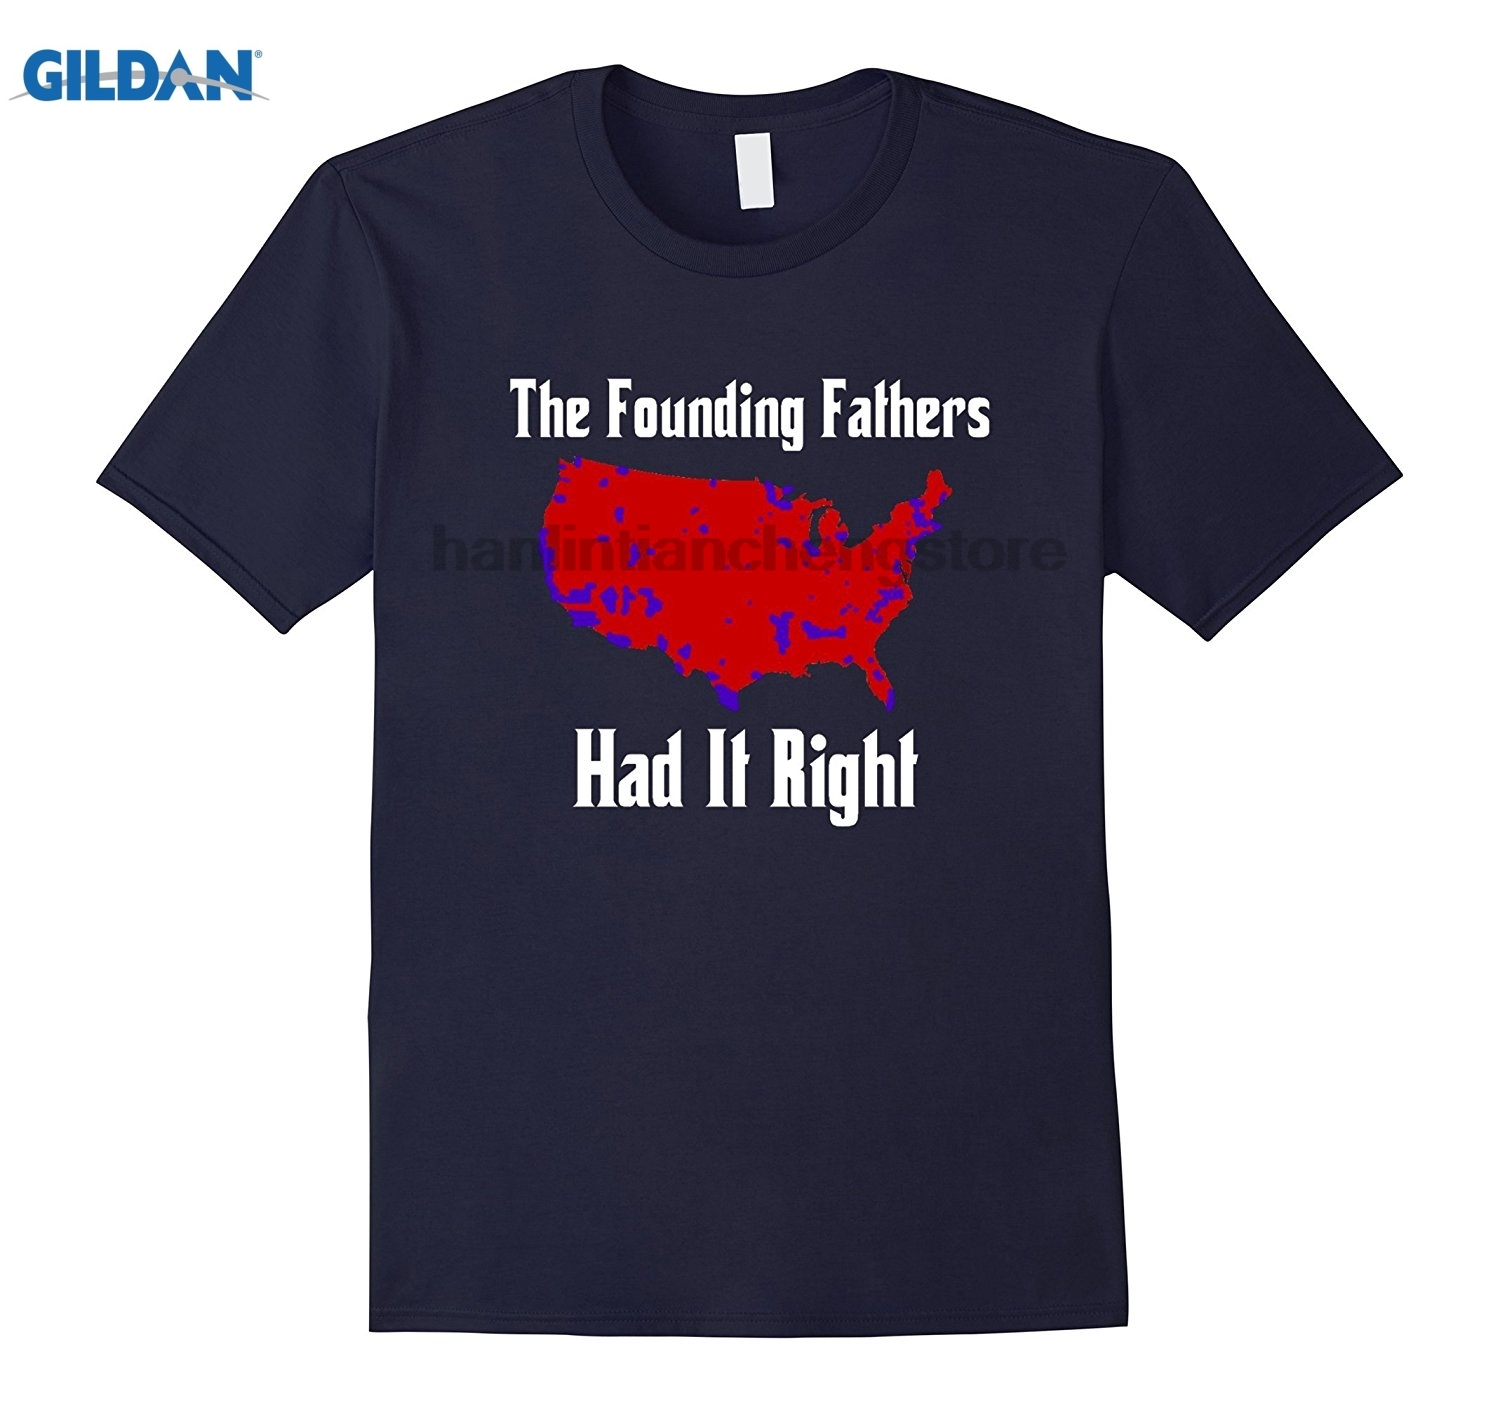 GILDAN Founding Fathers Election Map T-Shirt Version United States Of America Vs. Dumbfuckistan Election Map T-shirt